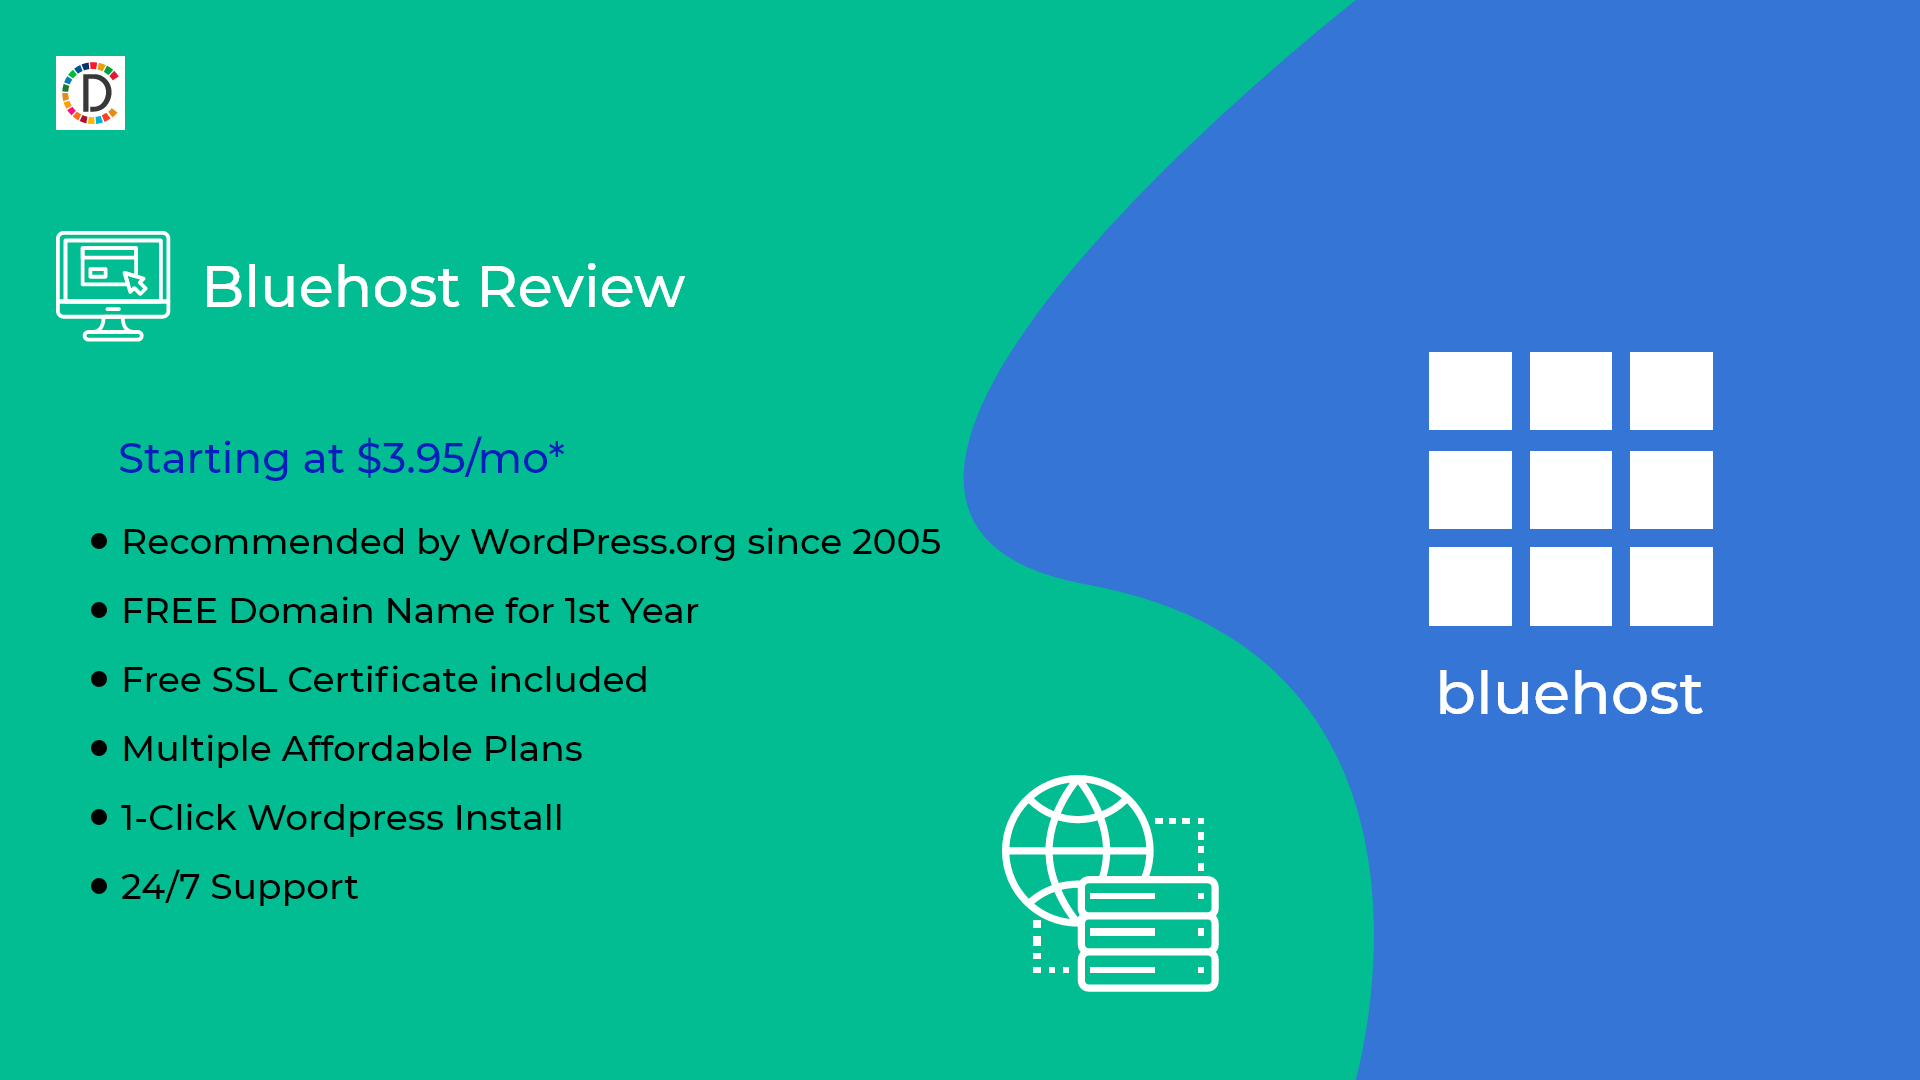 Bluehost Reviews 2021:Features, Pricing, Pros & Cons